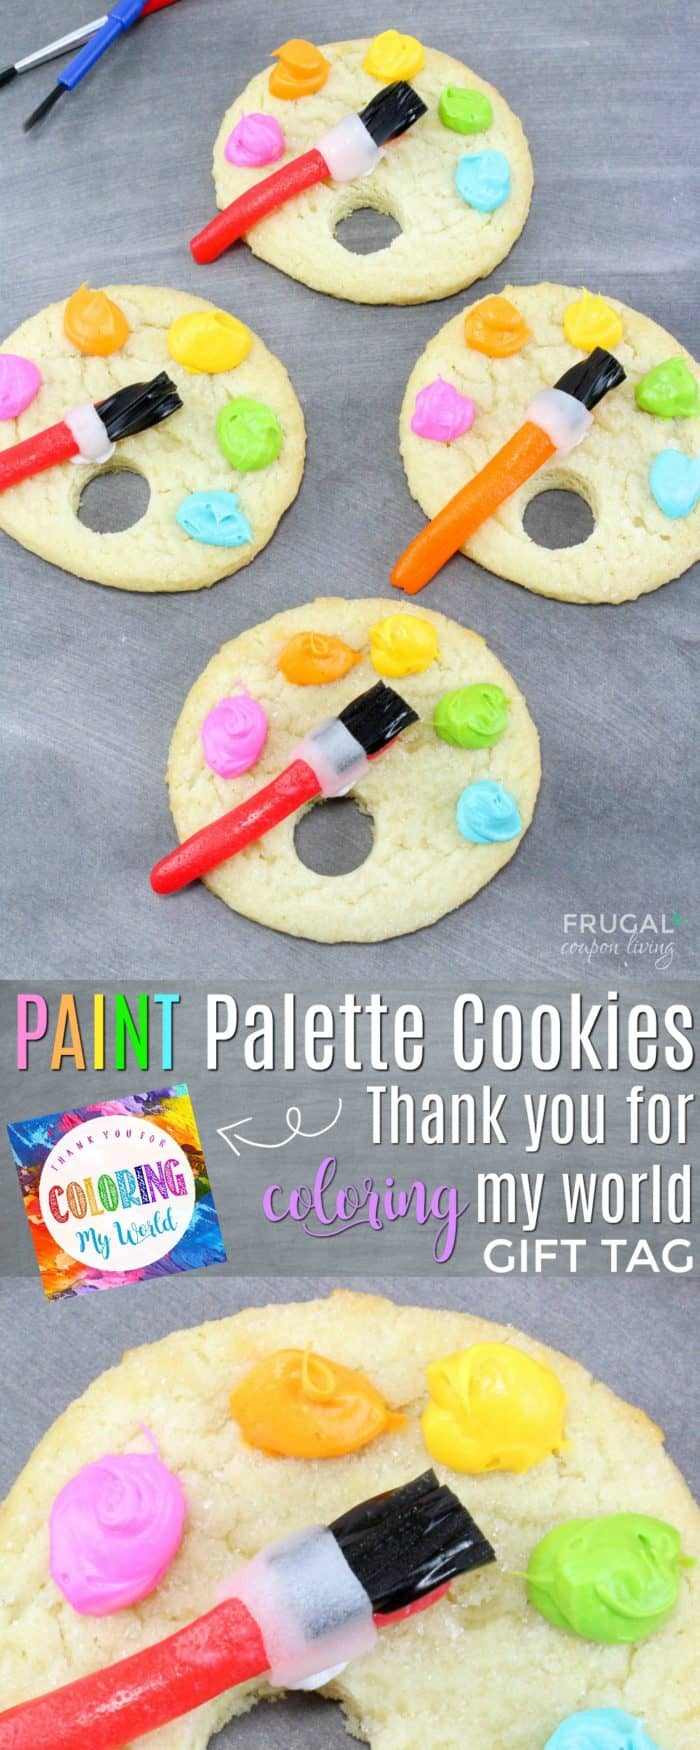 Artist Paint Palette Cookies plus Bonus Printable Gift Tag